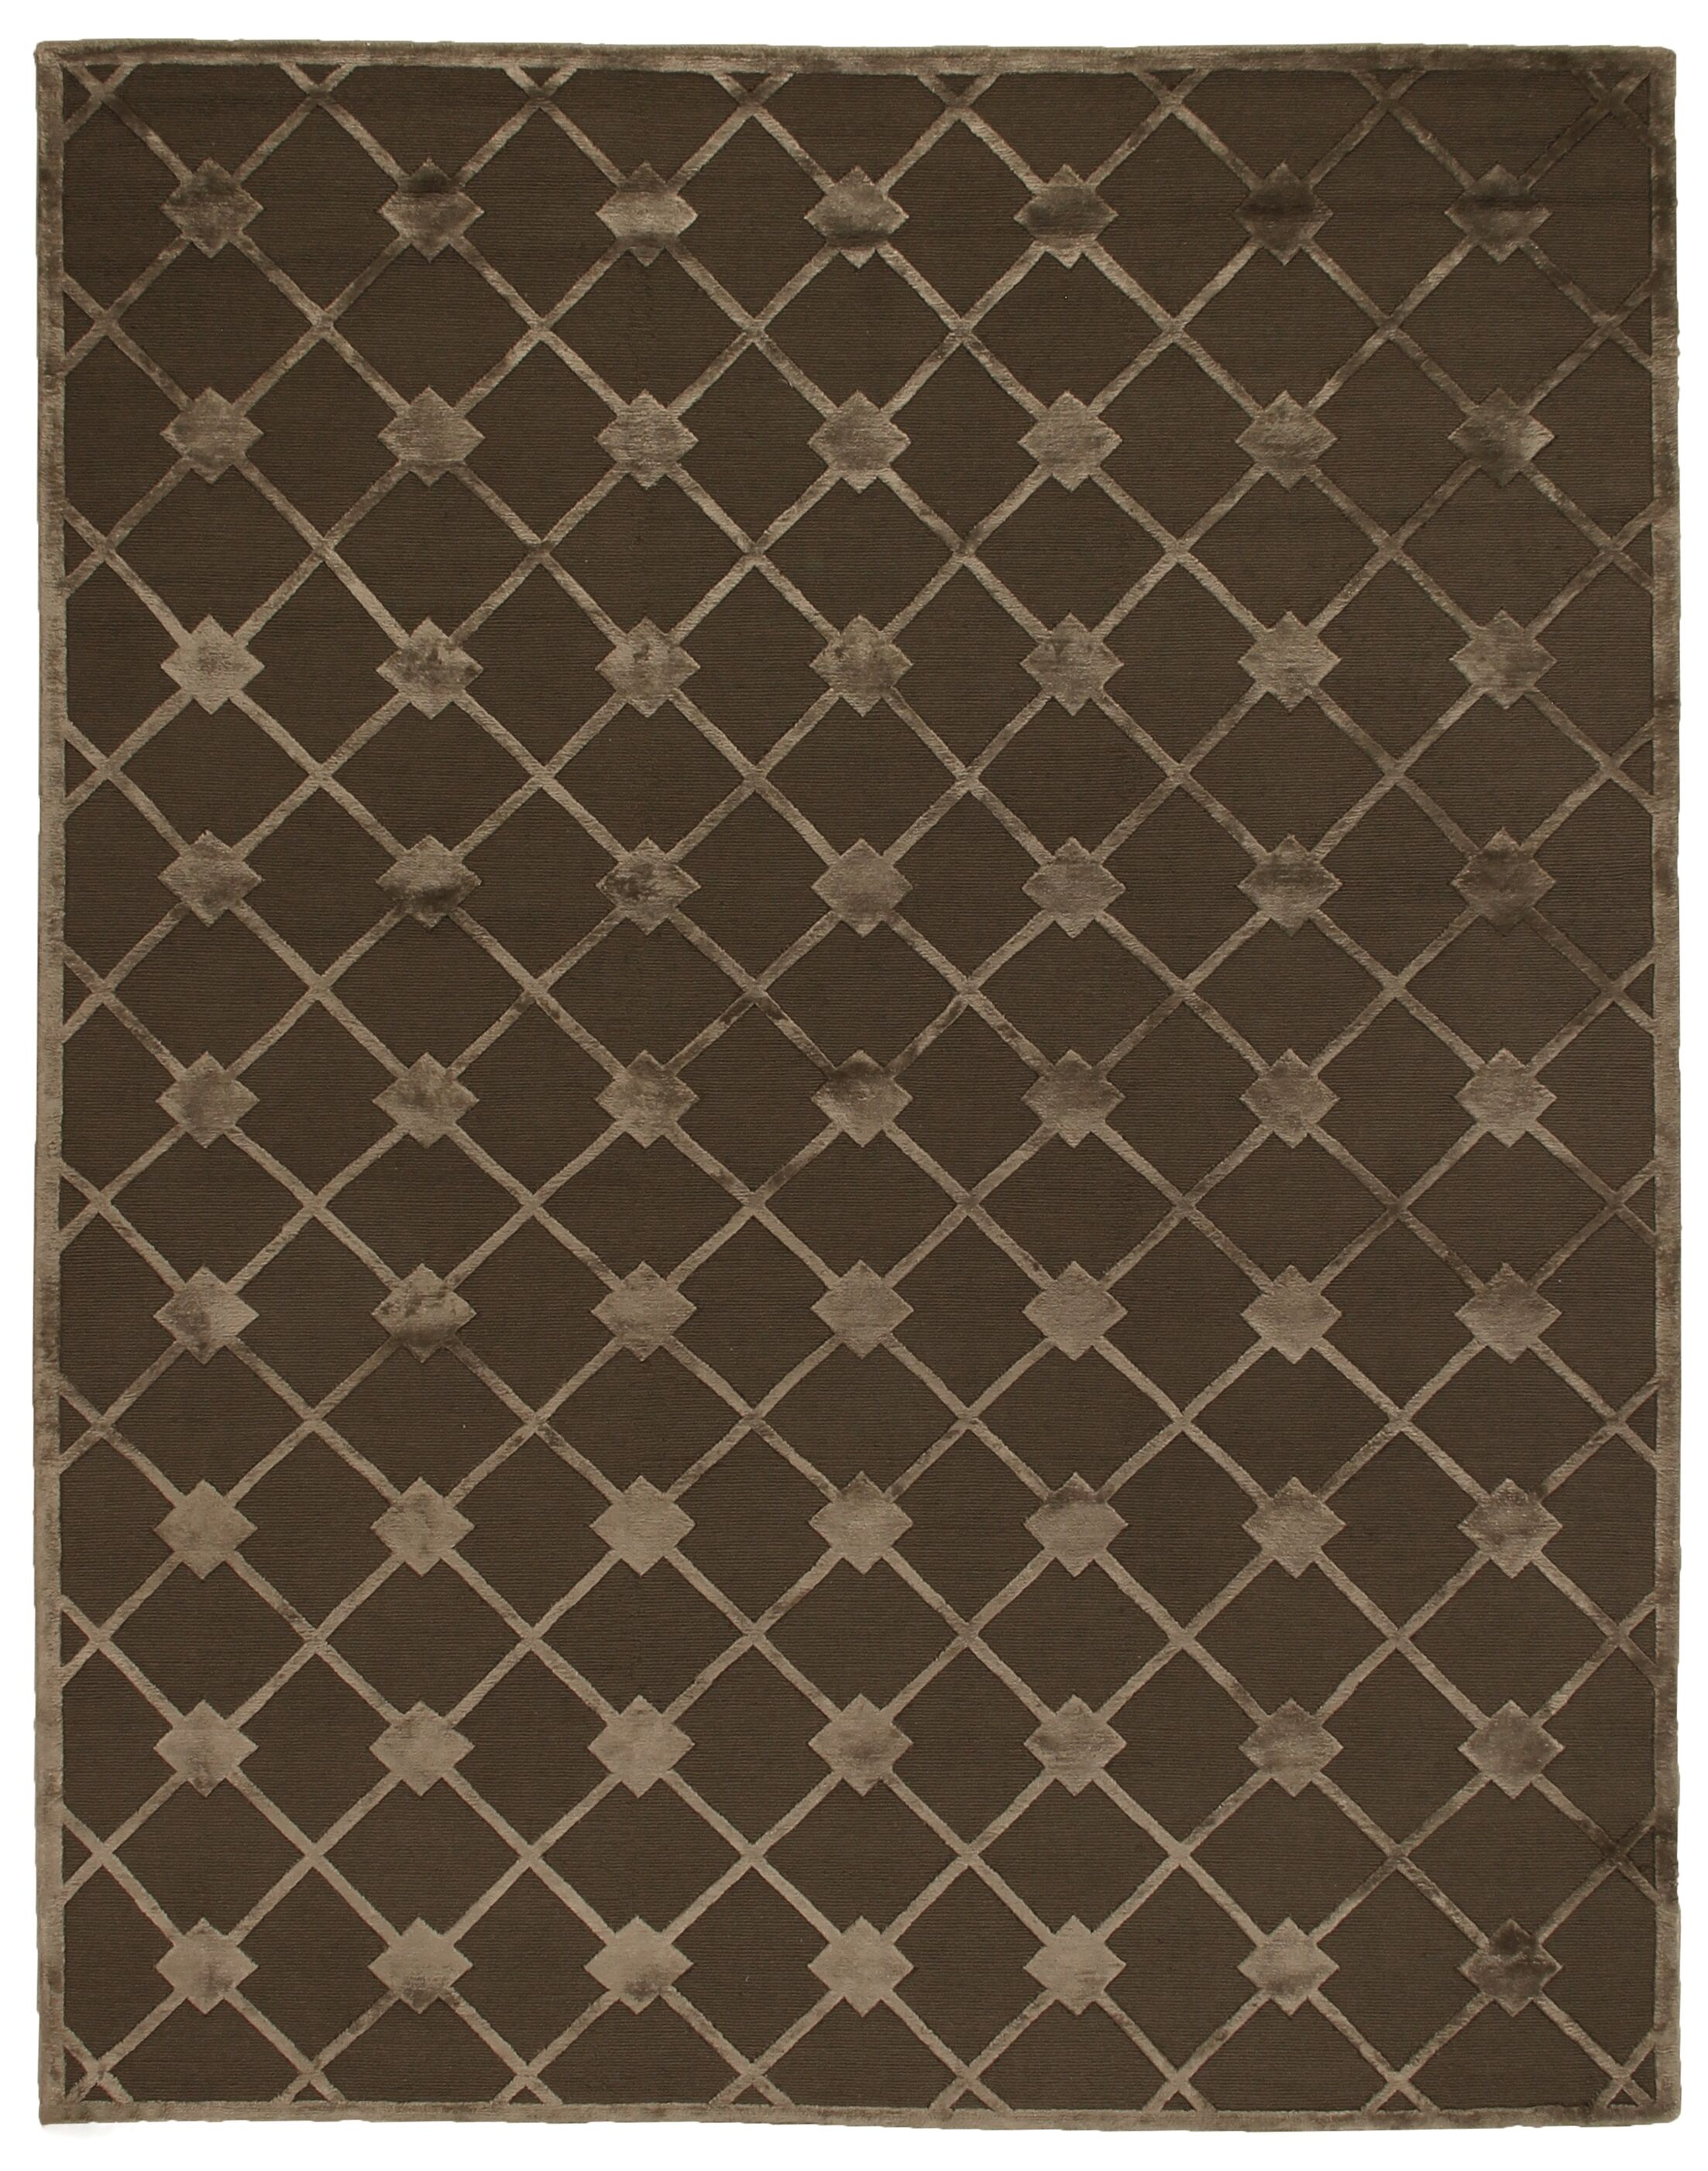 Hand-Knotted Wool/Silk Khaki/Gray Area Rug Rug Size: Rectangle 9' x 12'